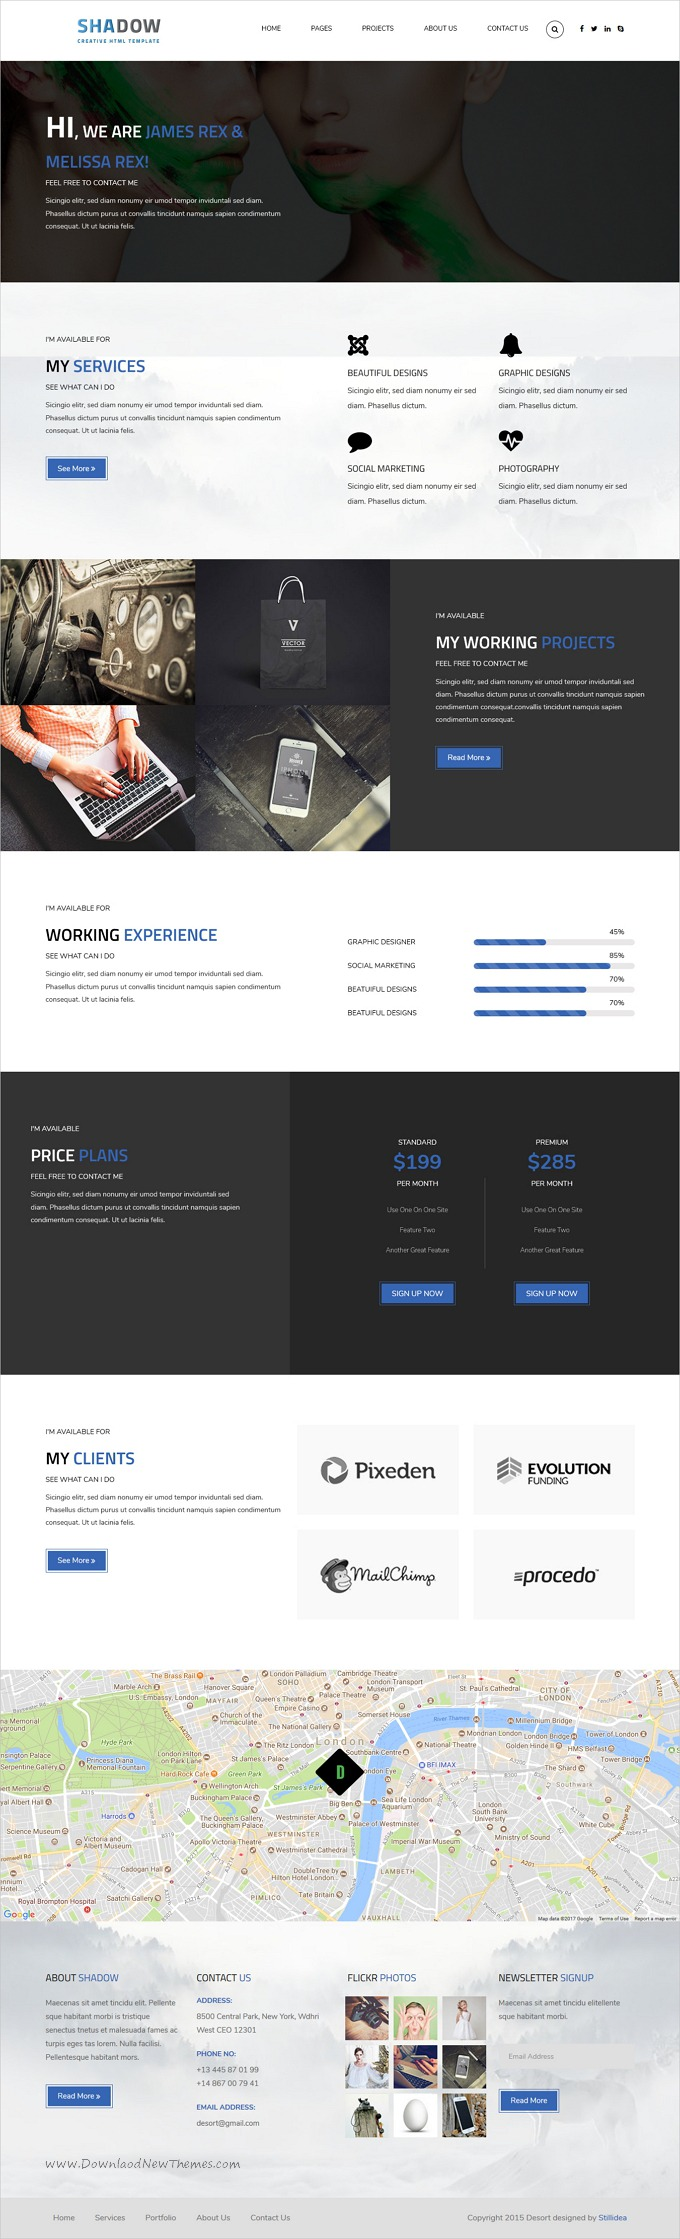 Shadow Is Clean And Modern Design Responsive Bootstrap Template